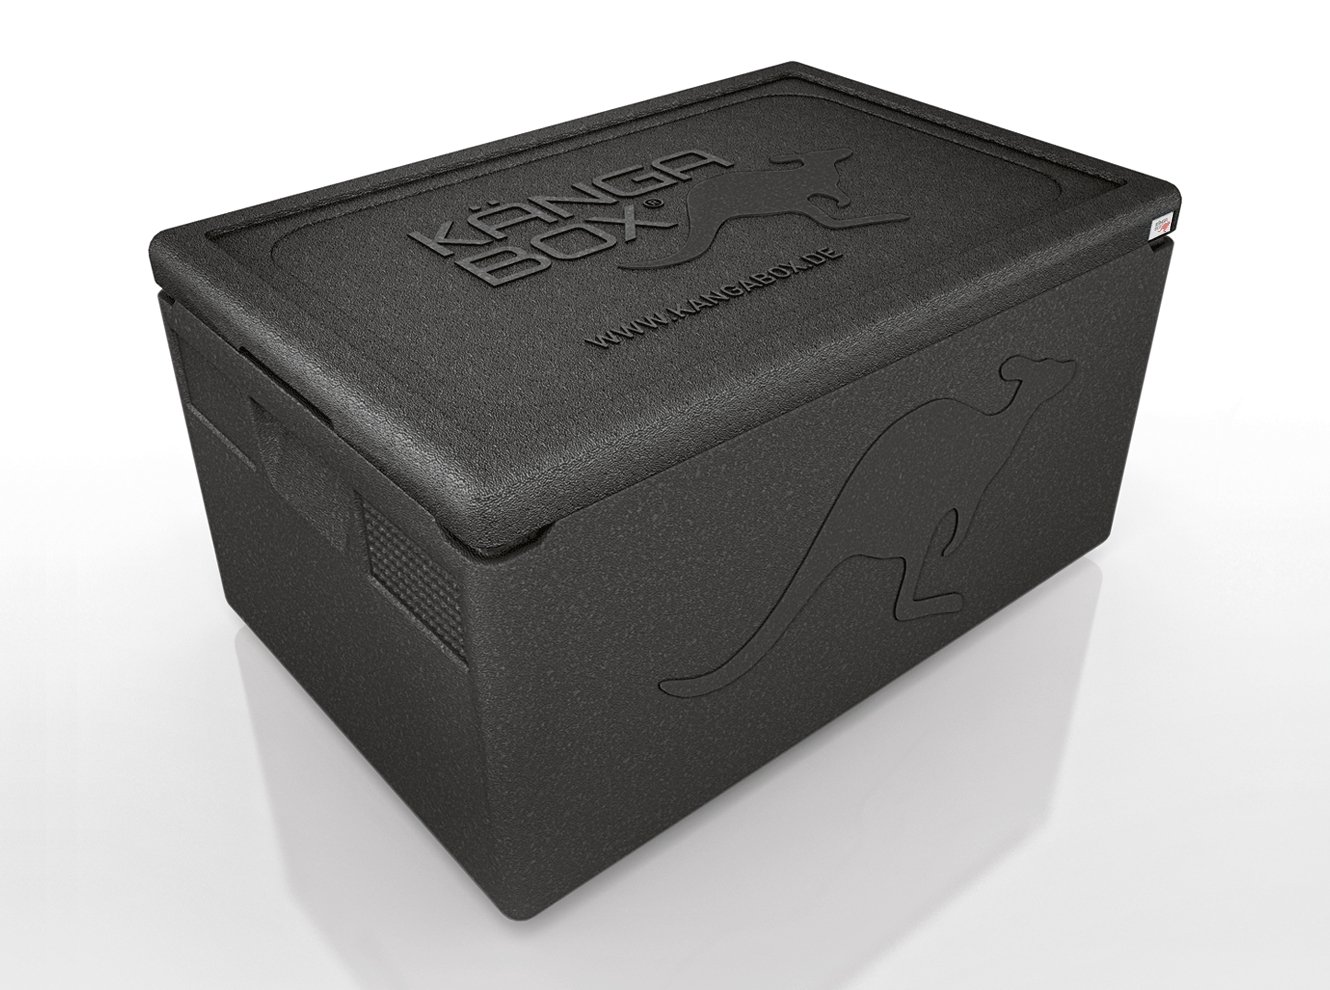 Kängabox Professional PR1260 Thermobox with Smooth Interior for GN 1/1 / Especially Easy to Clean Thoroughly / Gastronorm Format / Insulated Box for Transporting and Storing Food Such as Fish or Meat or Ice for Catering or Delivery or Parties / Available